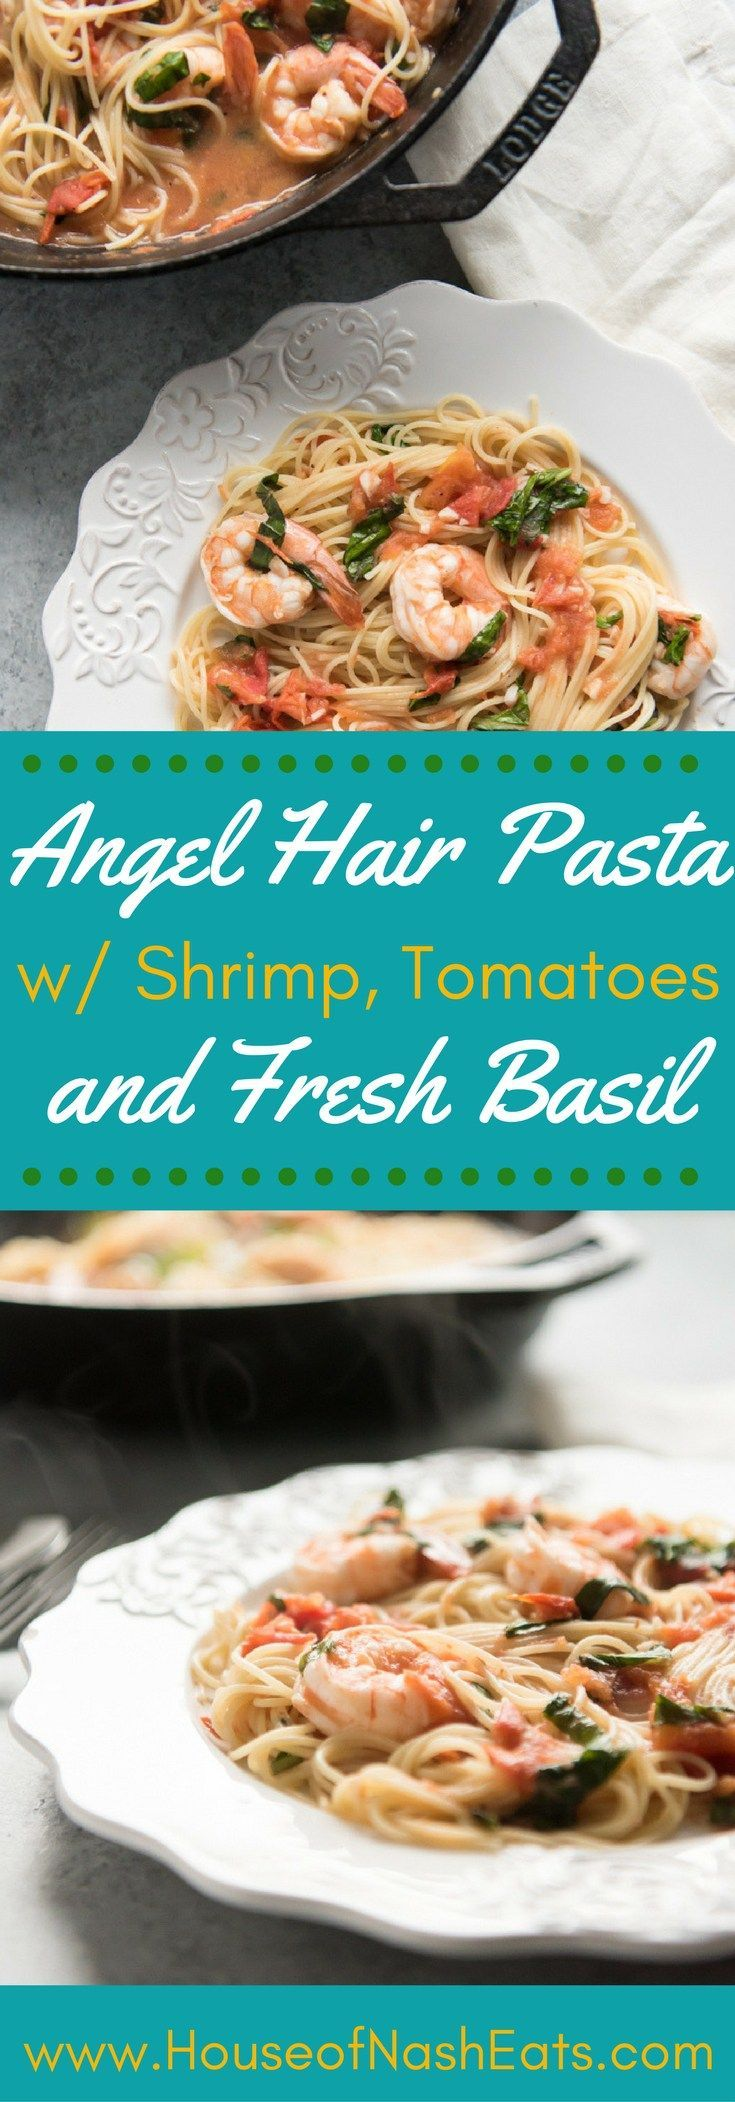 A classic combination of seafood and pasta, Angel Hair Pasta with Shrimp, Tomatoes and Fresh Basil makes for a simple, but elegant dinner with incredible flavors! It's an easy-fancy meal that is just as perfect to impress somebody special as it is to satisfy a hungry family on a weeknight when you need to get dinner on the table in under 30 minutes. #GoldenGrainMatchmaker #ad